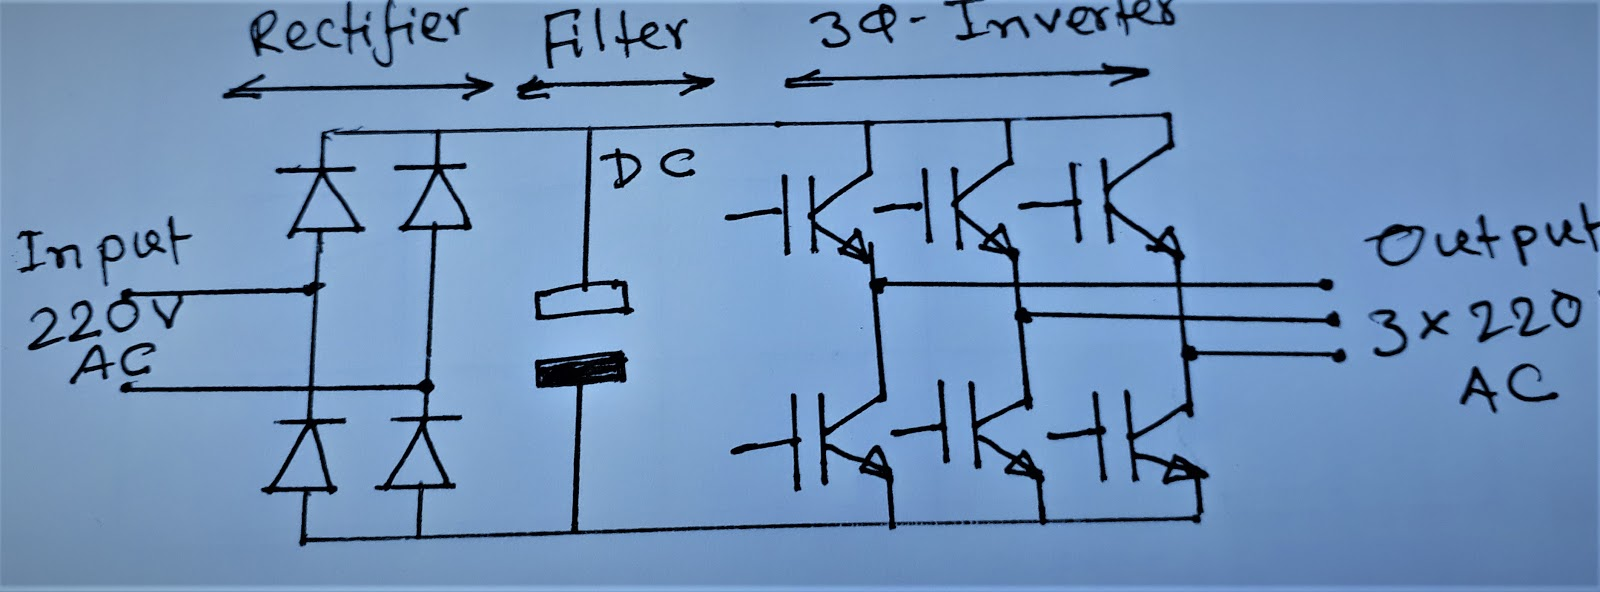 How Can Convert Single Phase Power Into Three Phase?